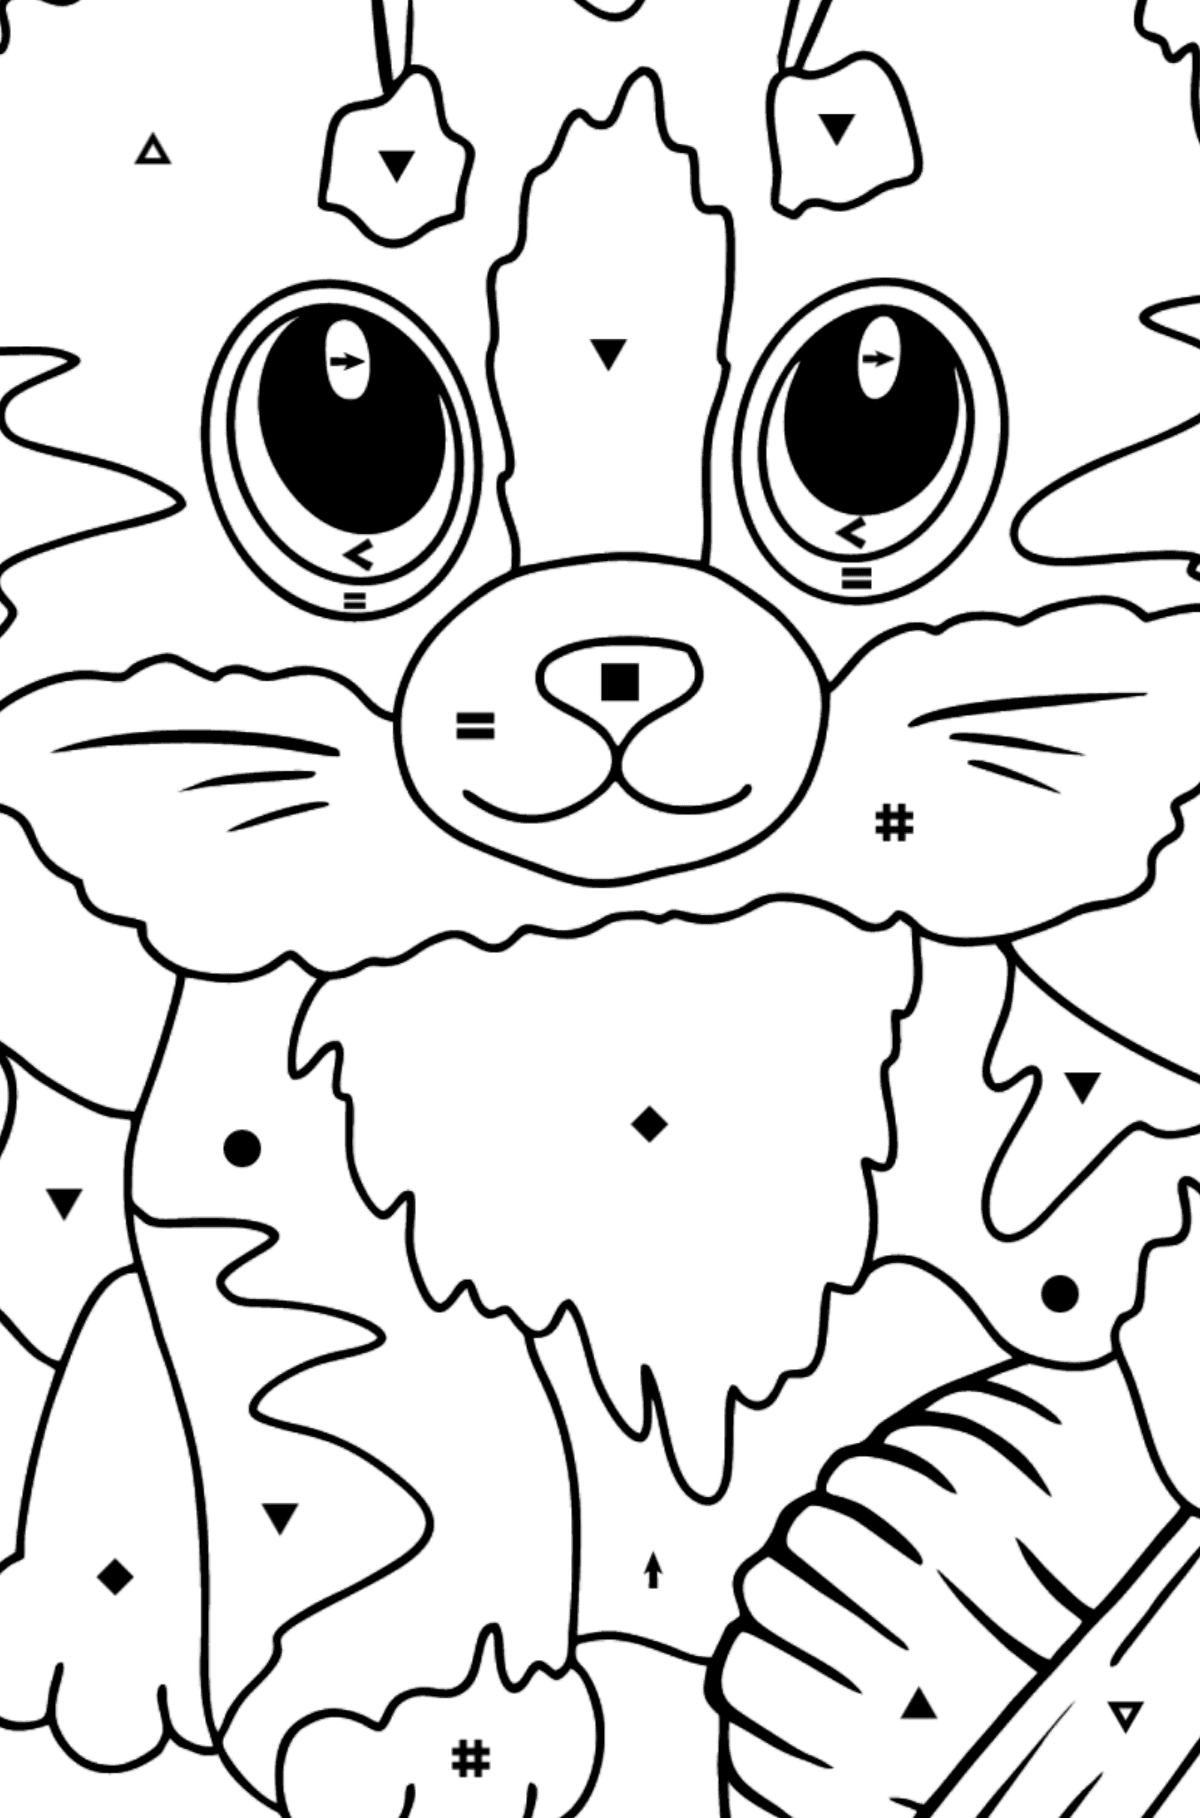 Cute Cat Coloring Page - Coloring by Symbols for Kids